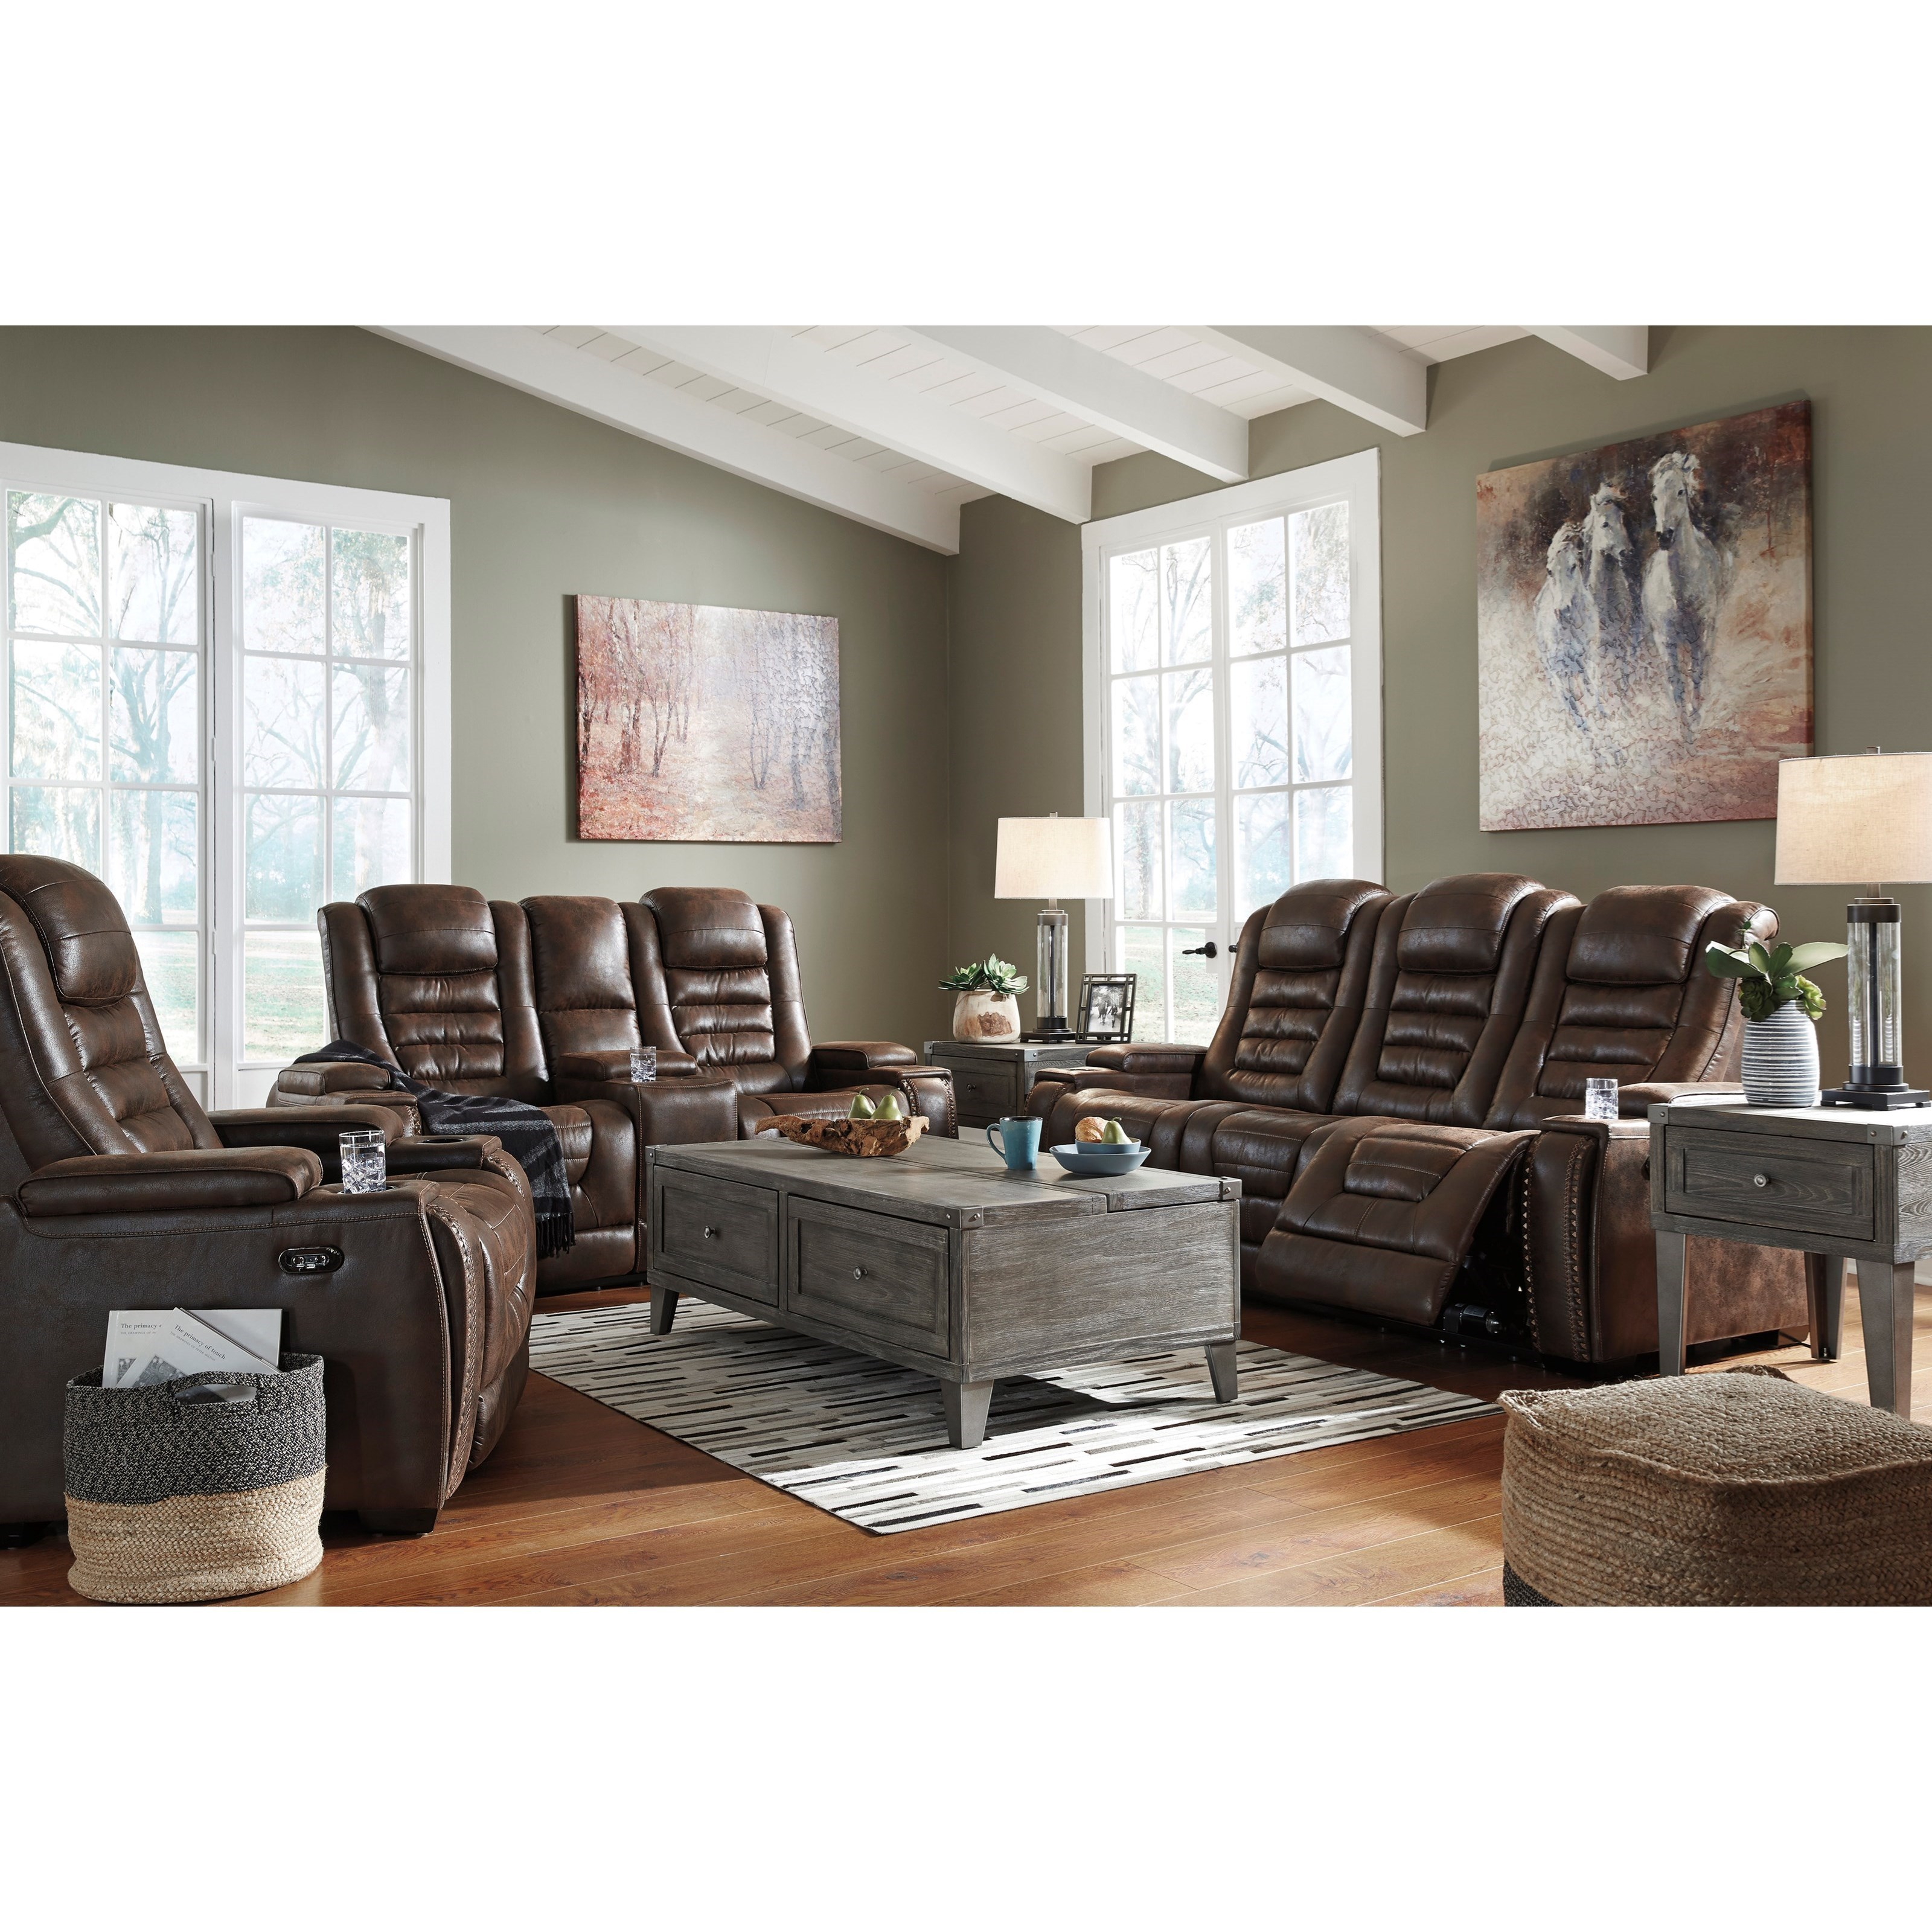 Game Zone Reclining Living Room Group by Signature Design by Ashley at Northeast Factory Direct